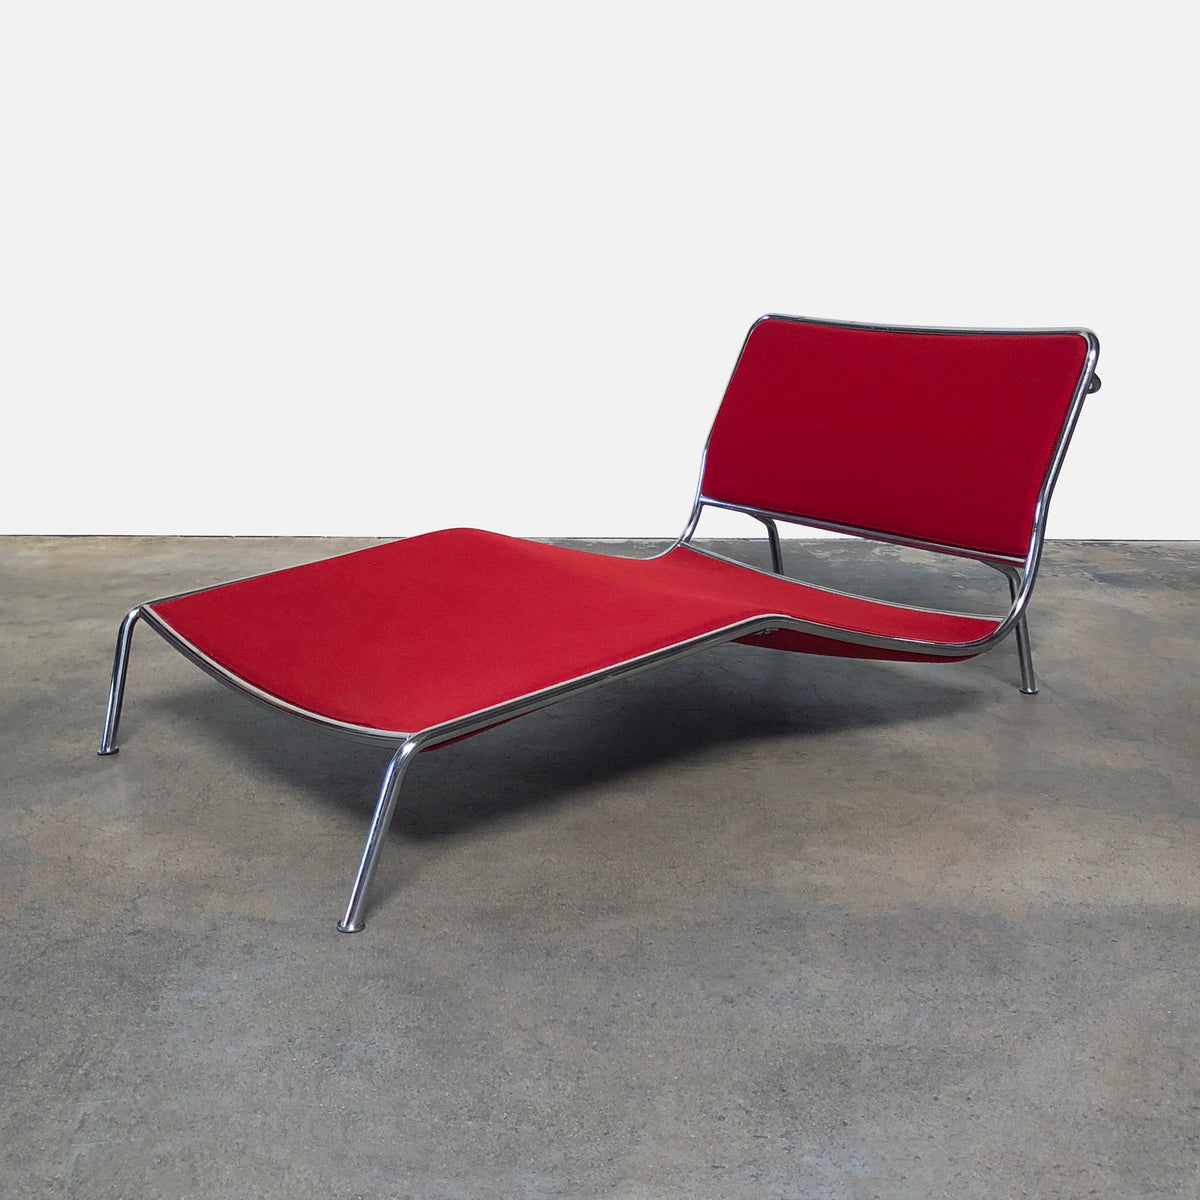 Living Divani Red Felt Frog Chaise Lounge Chair by Piero Lissoni